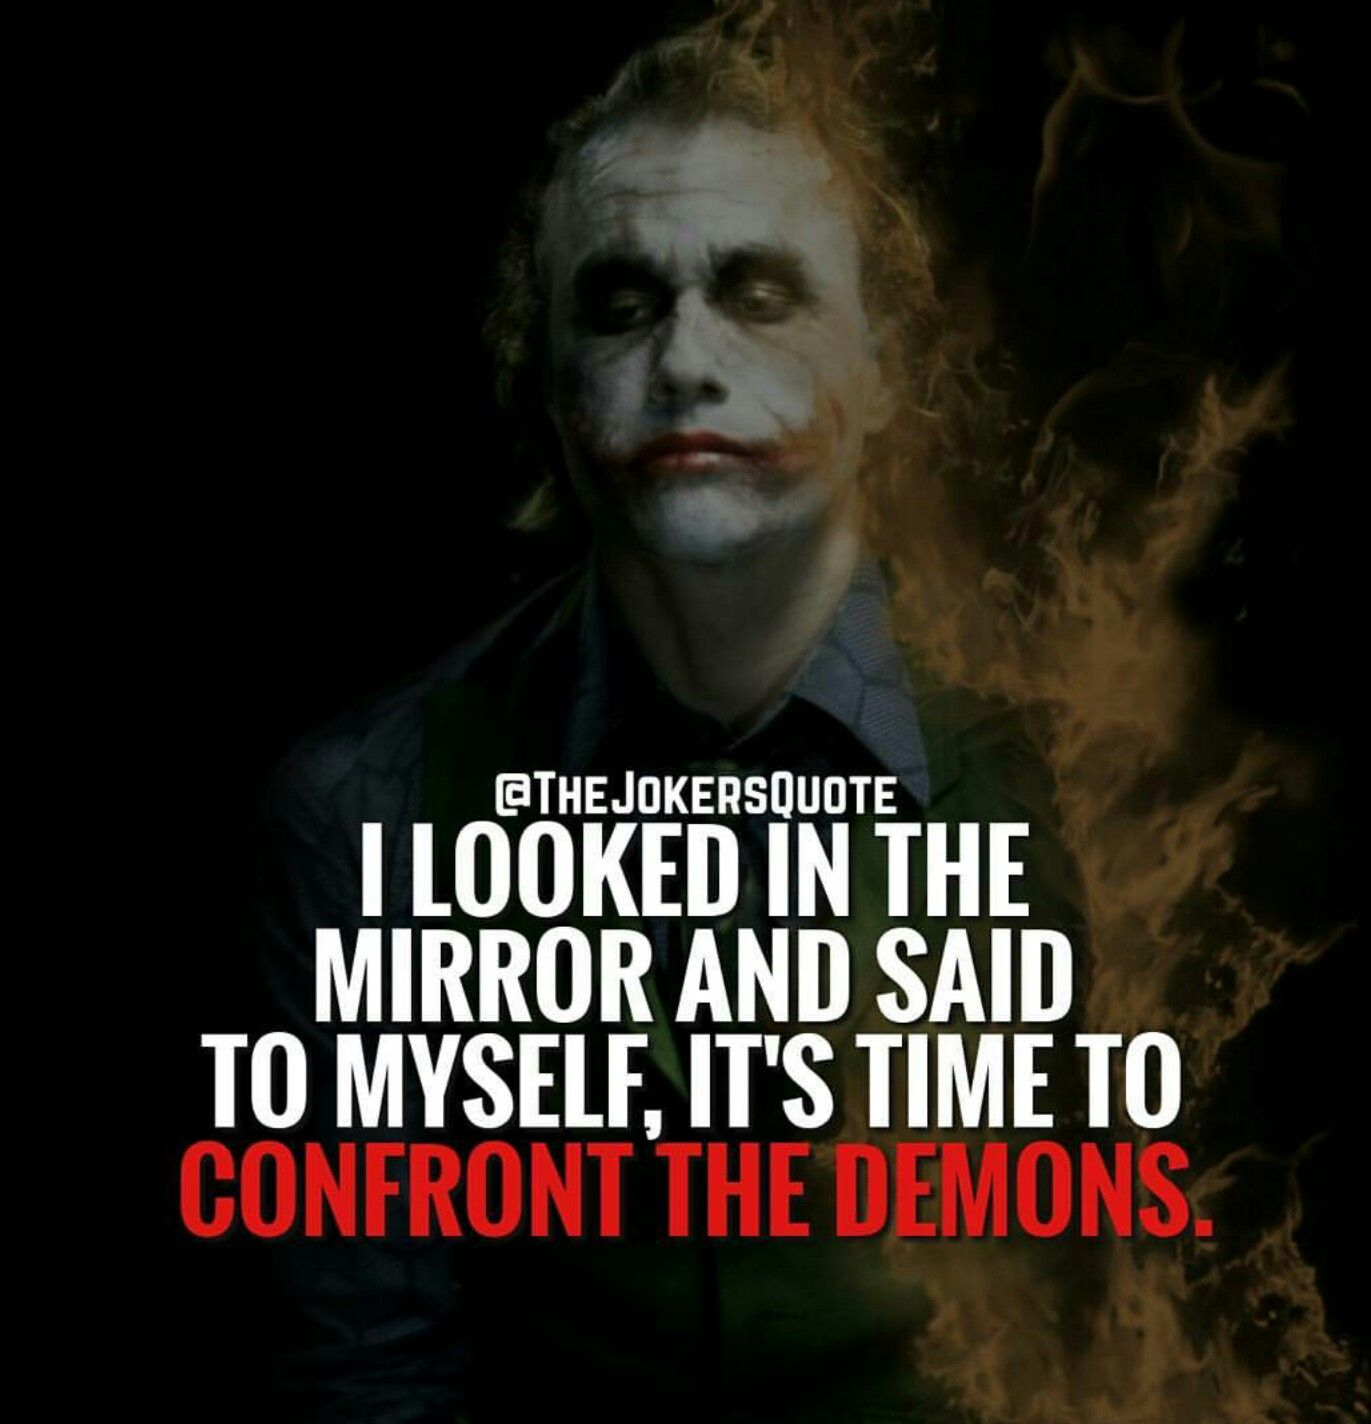 Joker Quotes Stunning Tftfyvy  Joker's  Pinterest  Joker Joker Quotes And Bipolar Disorder